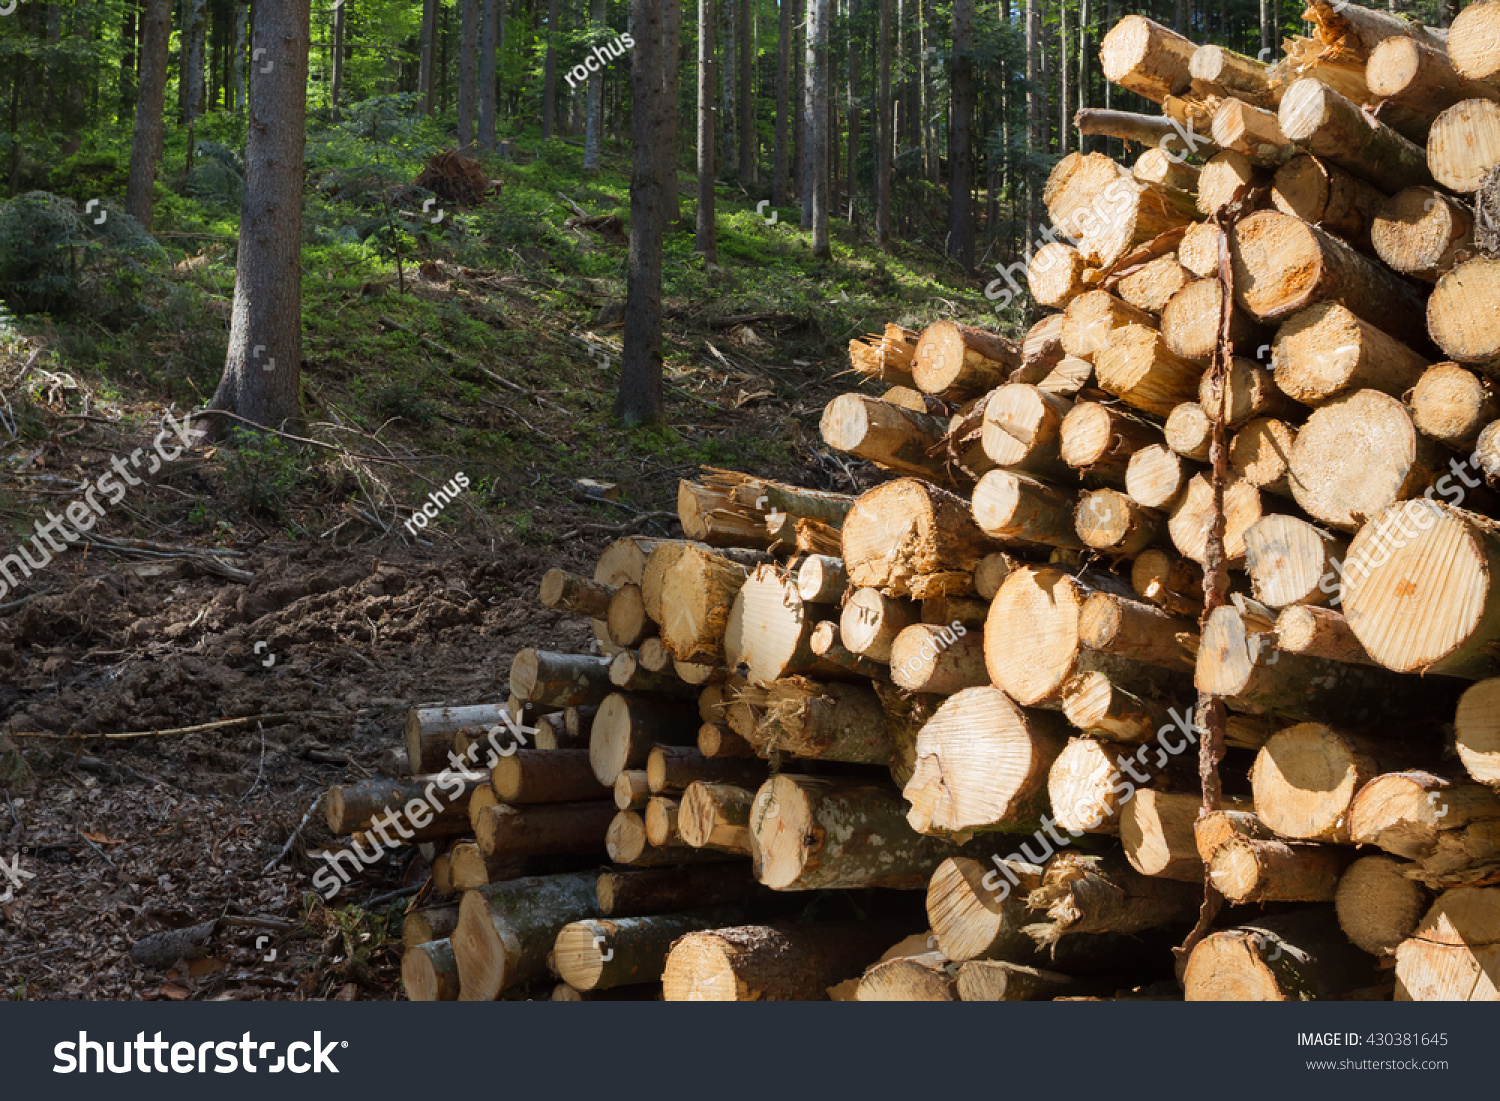 Pile Of Timber : Pile timber stock photo shutterstock